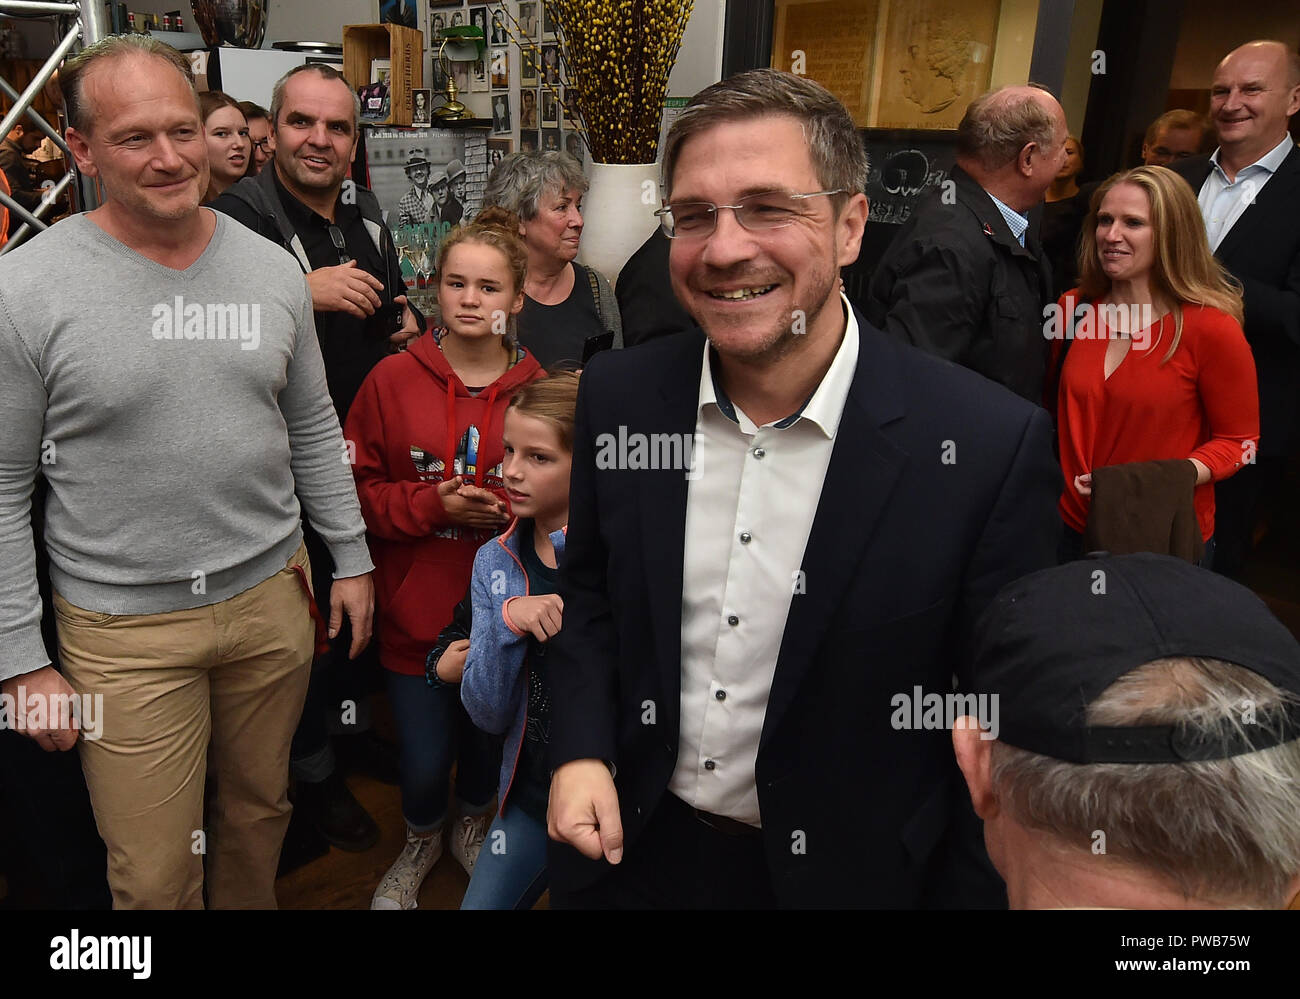 Potsdam, Brandenburg. 14th Oct, 2018. 14 October 2018, Germany, Potsdam: The comrades celebrate Mike Schubert (SPD) at the election party. He was elected the new Lord Mayor with 55.3 percent of the votes. Credit: Bernd Settnik/dpa-Zen tralbild/dpa/Alamy Live News - Stock Image